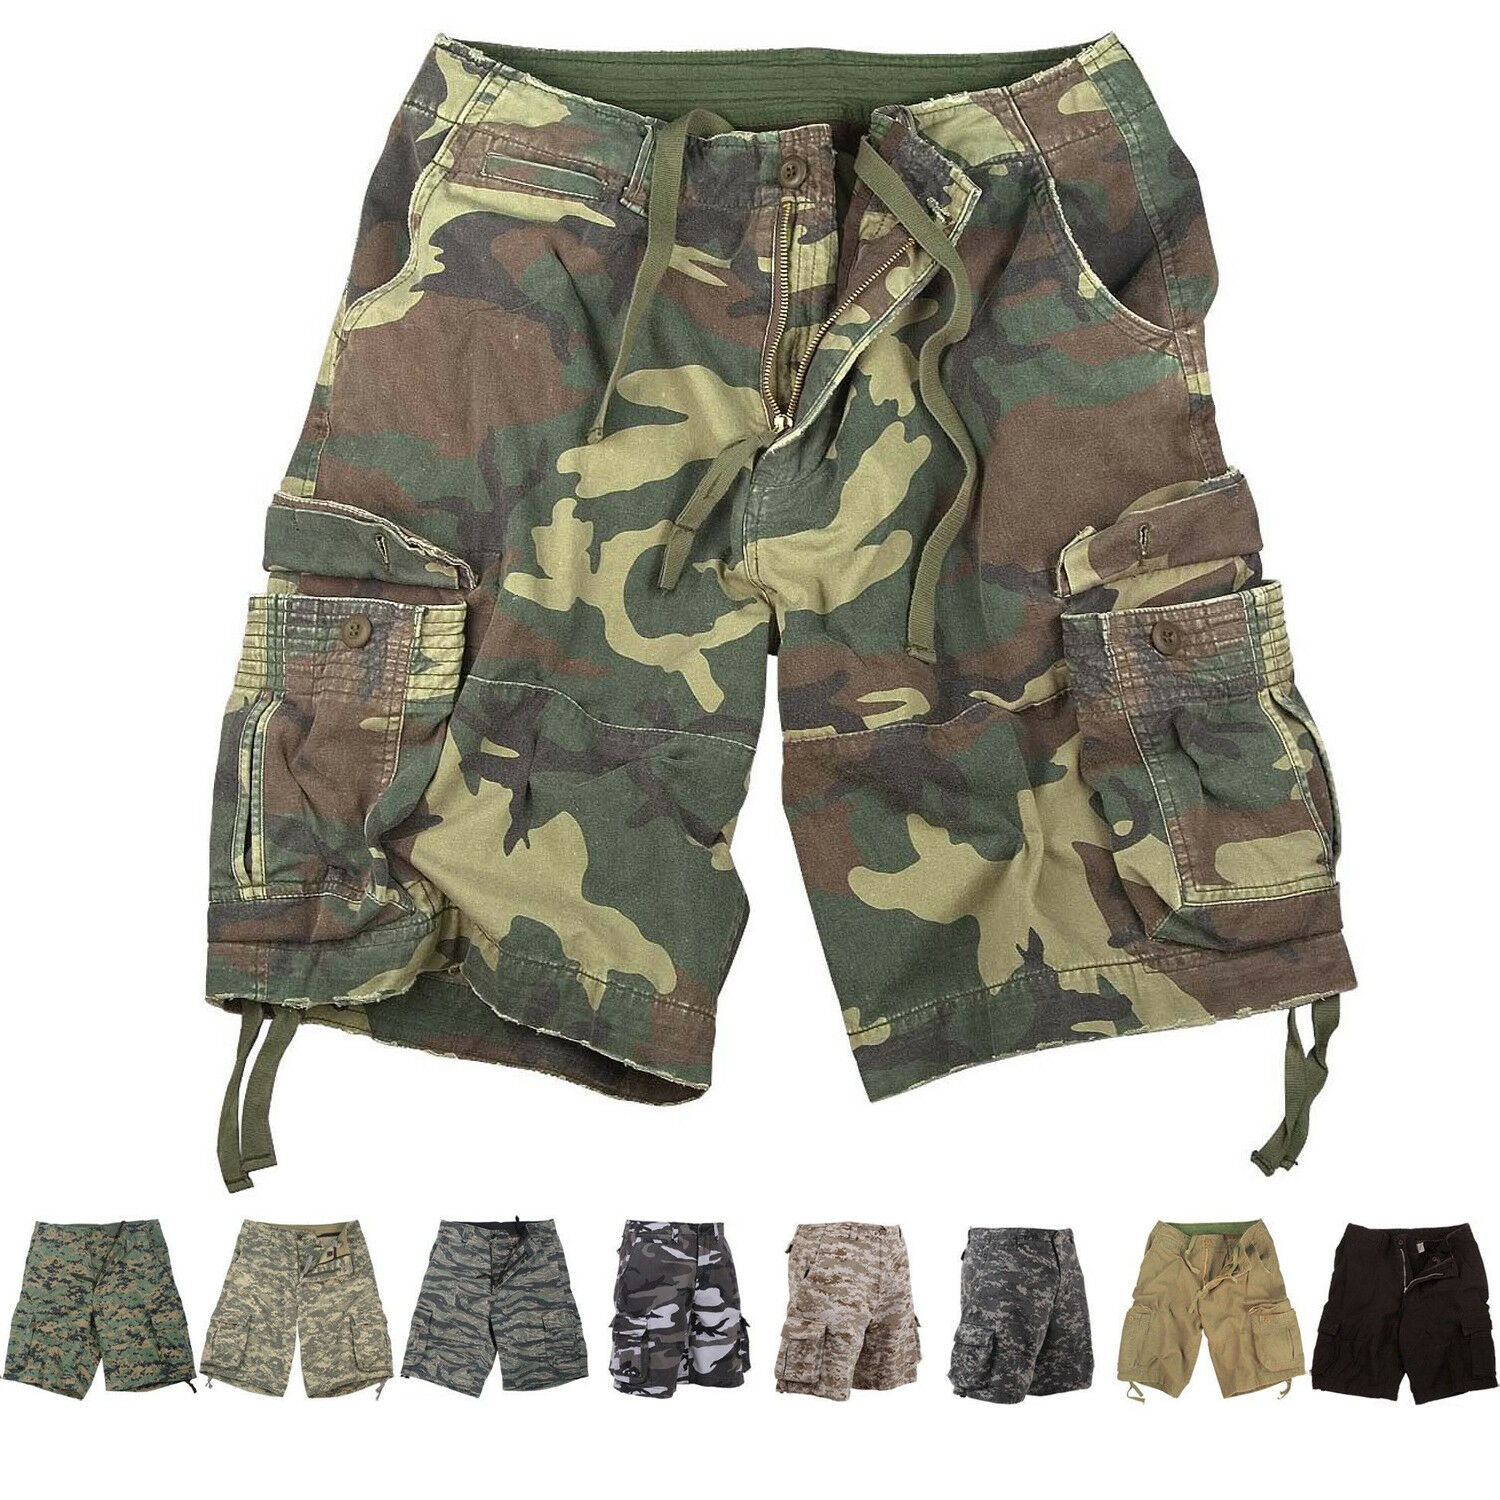 Купить Mens Vintage Camo Cargo Shorts, Army Military Tactical Infantry Utility Rugged